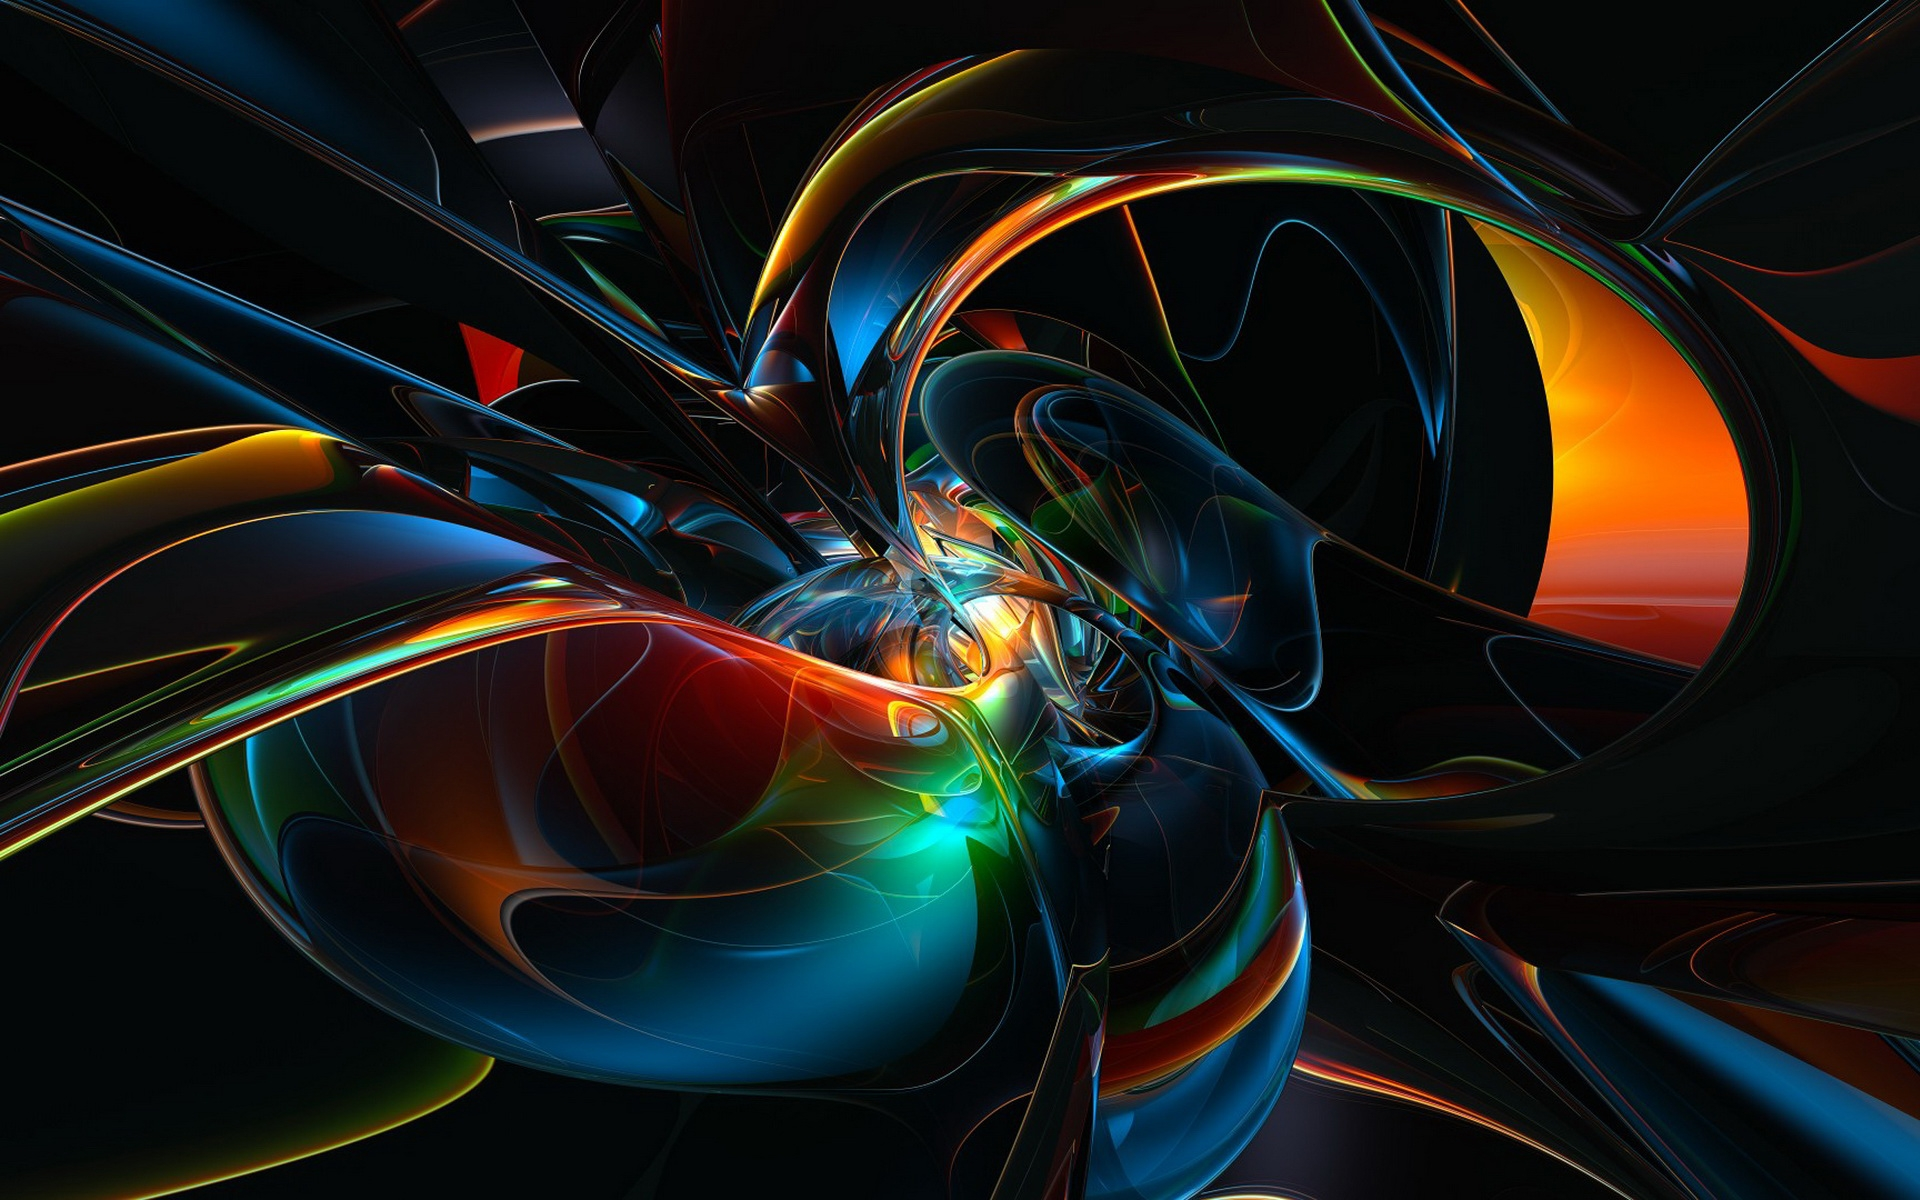 Abstract Black And Orange Background Hd Wallpaper